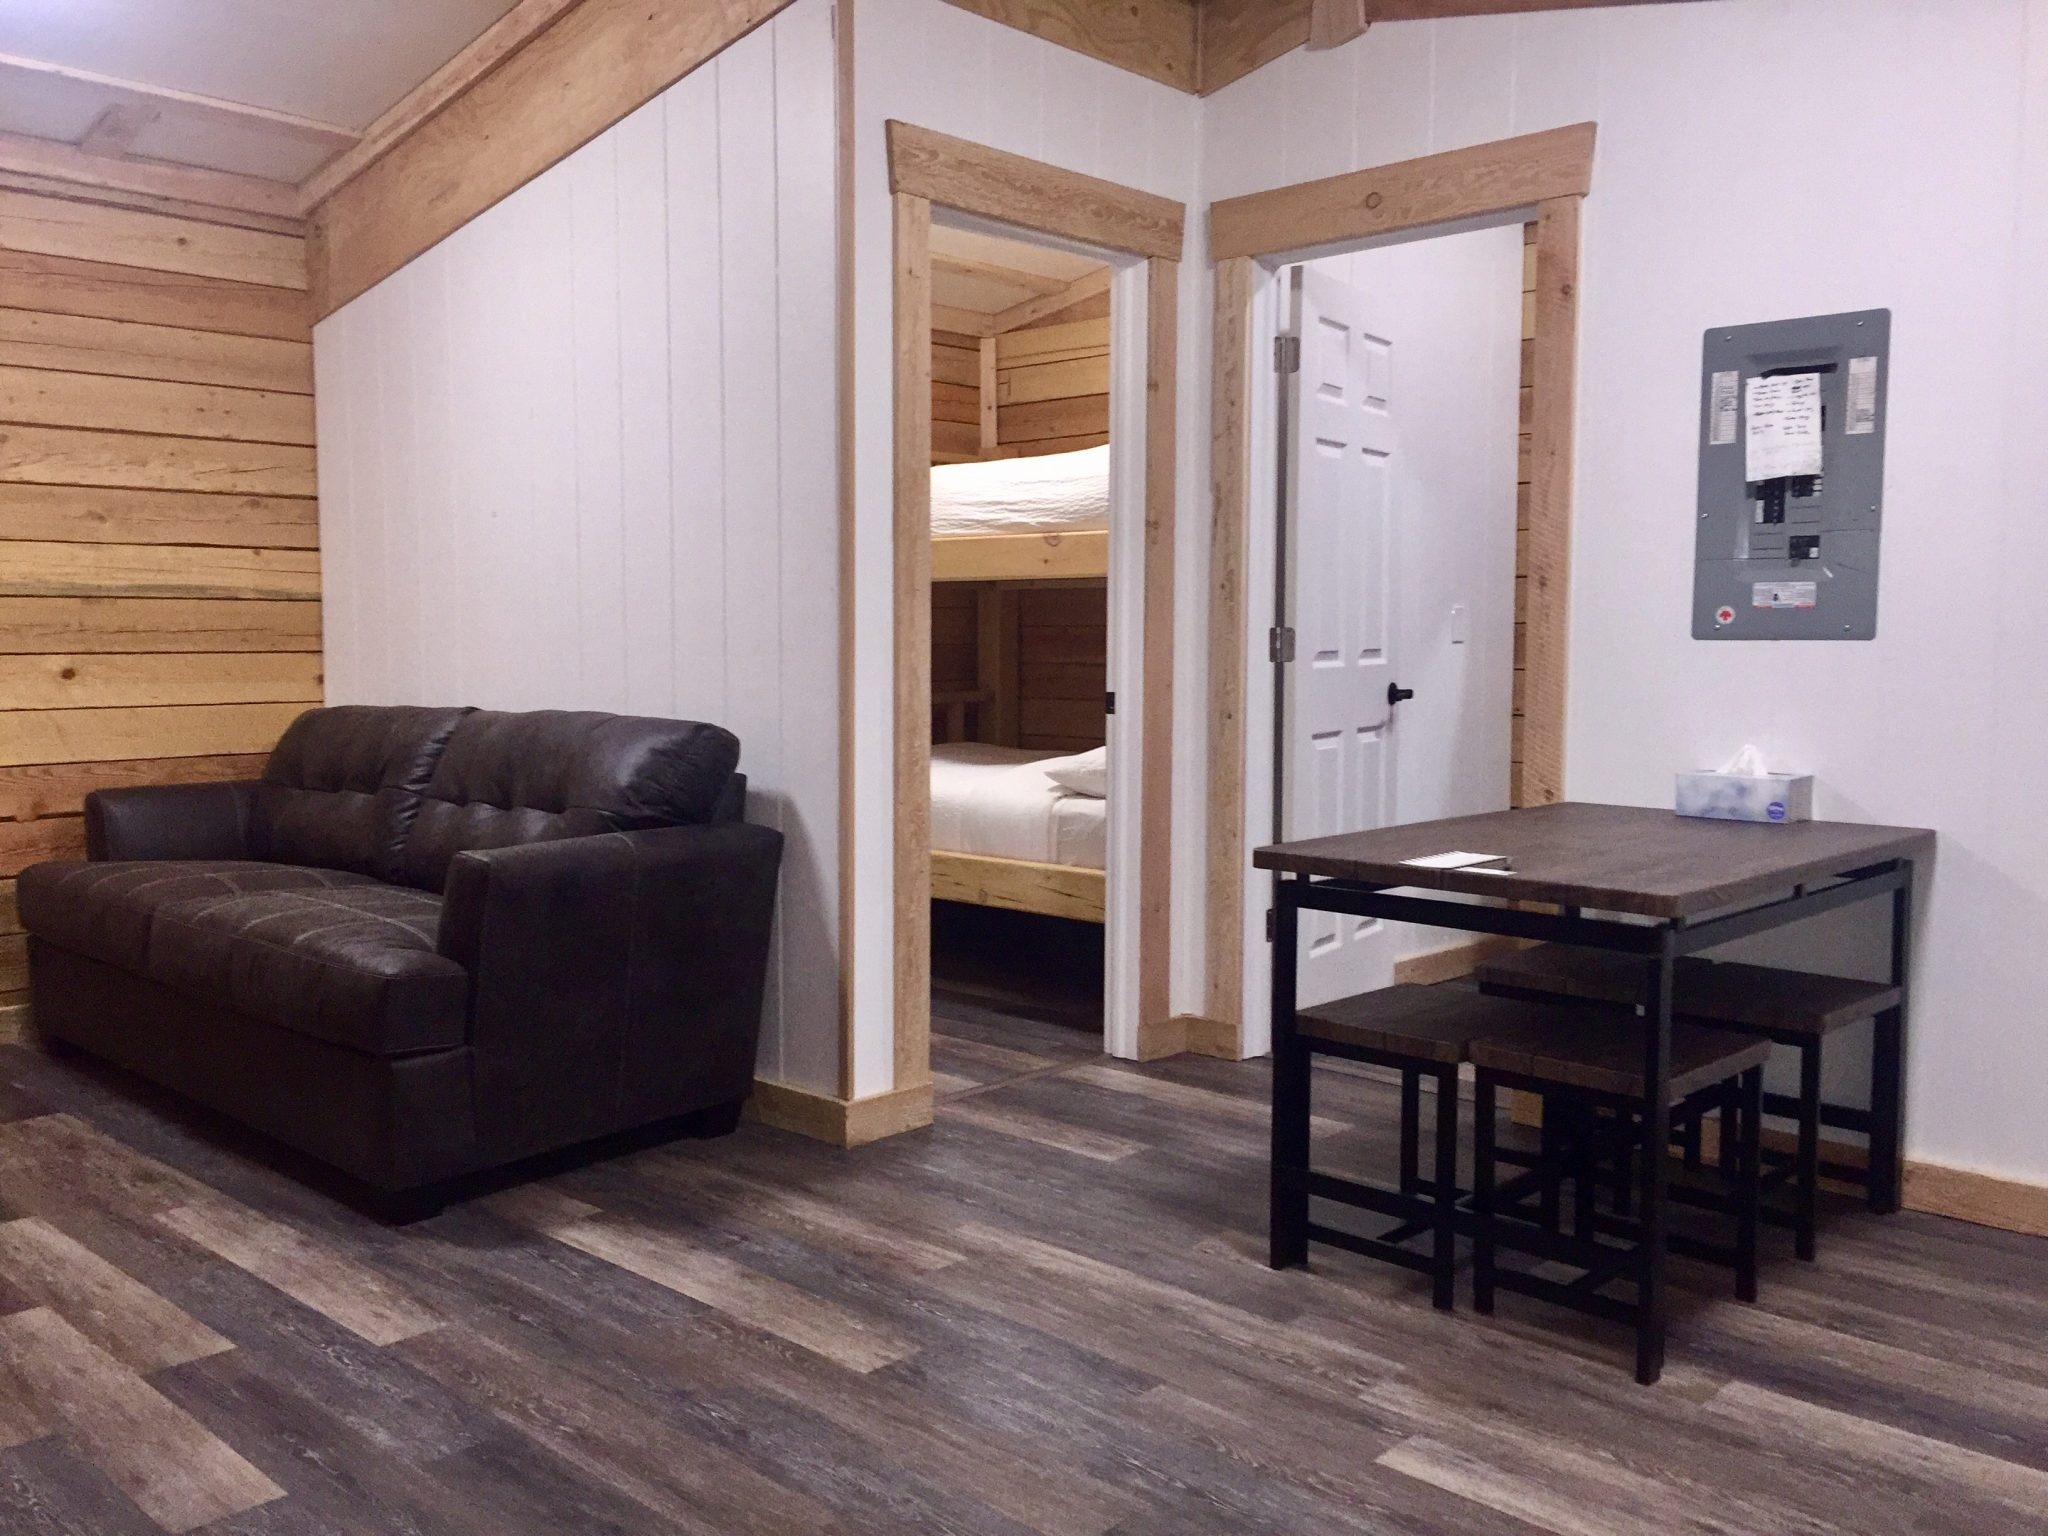 Base Camp Guest House Revelstoke Stay Hotel Cabin